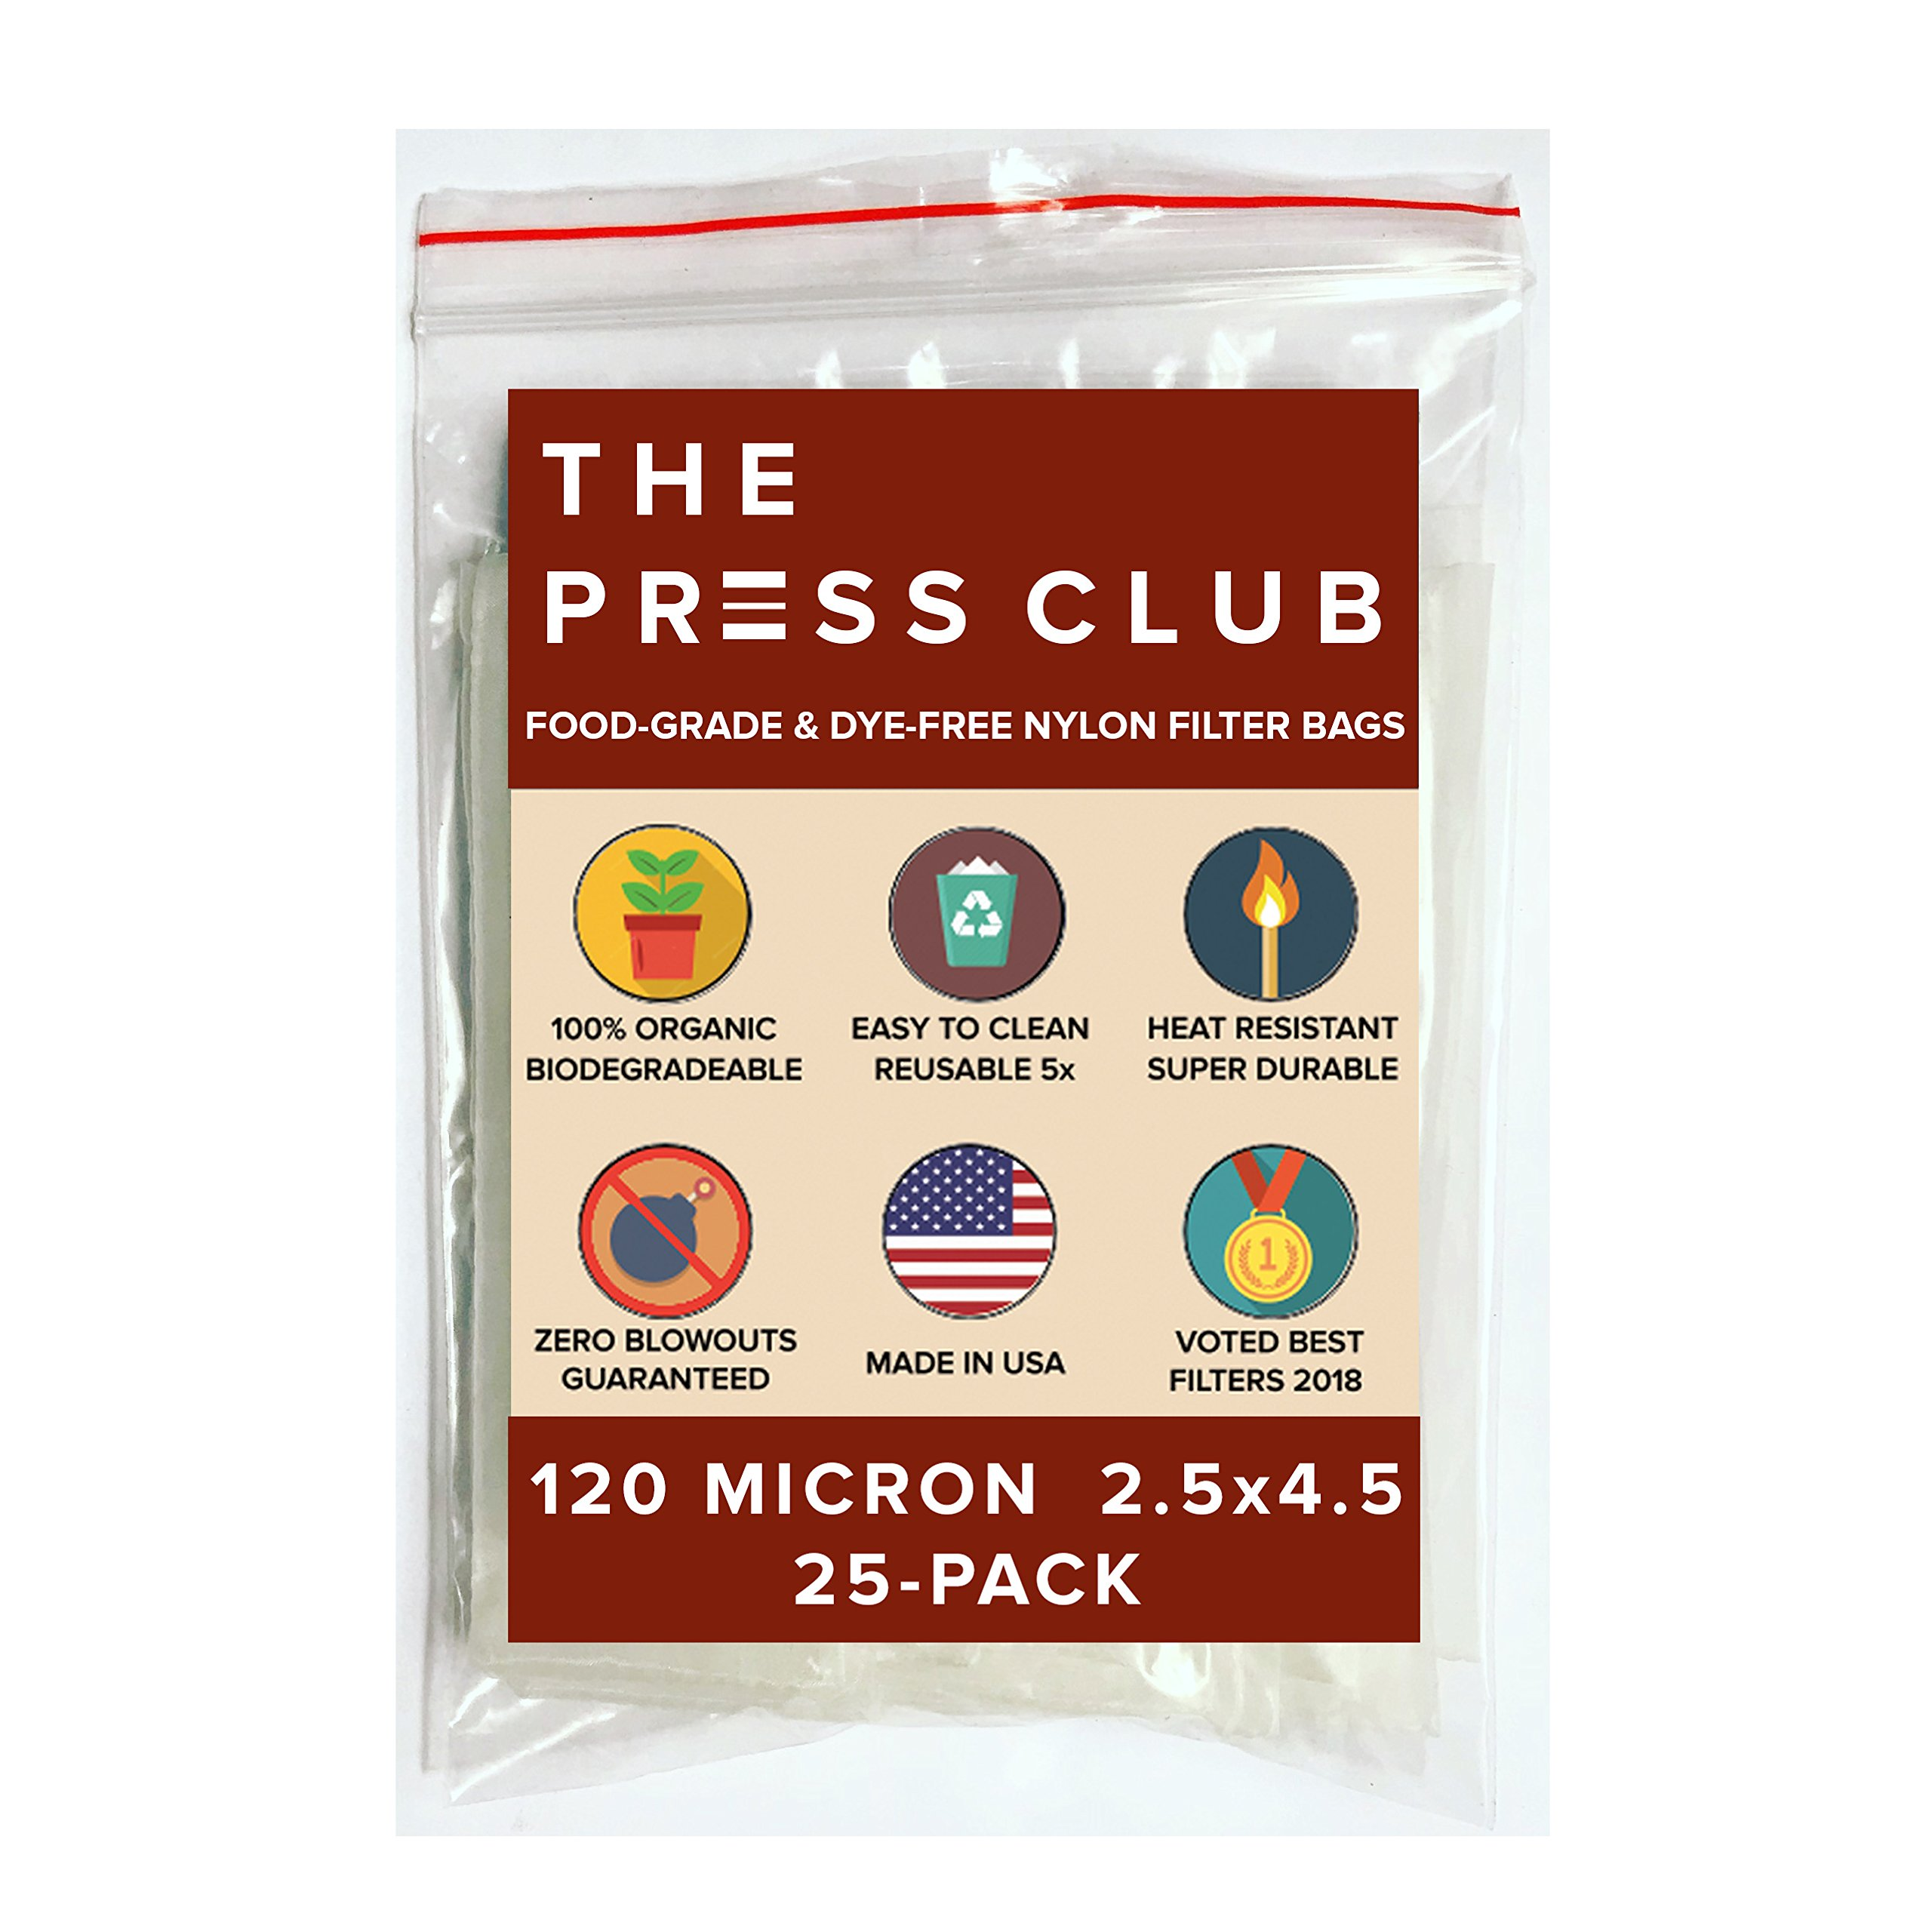 120 Micron | Premium Nylon Tea Filter Press Screen Bags | 2.5'' x 4.5'' | 25 Pack | Zero Blowout Guarantee | All Micron & Sizes Available by The Press Club